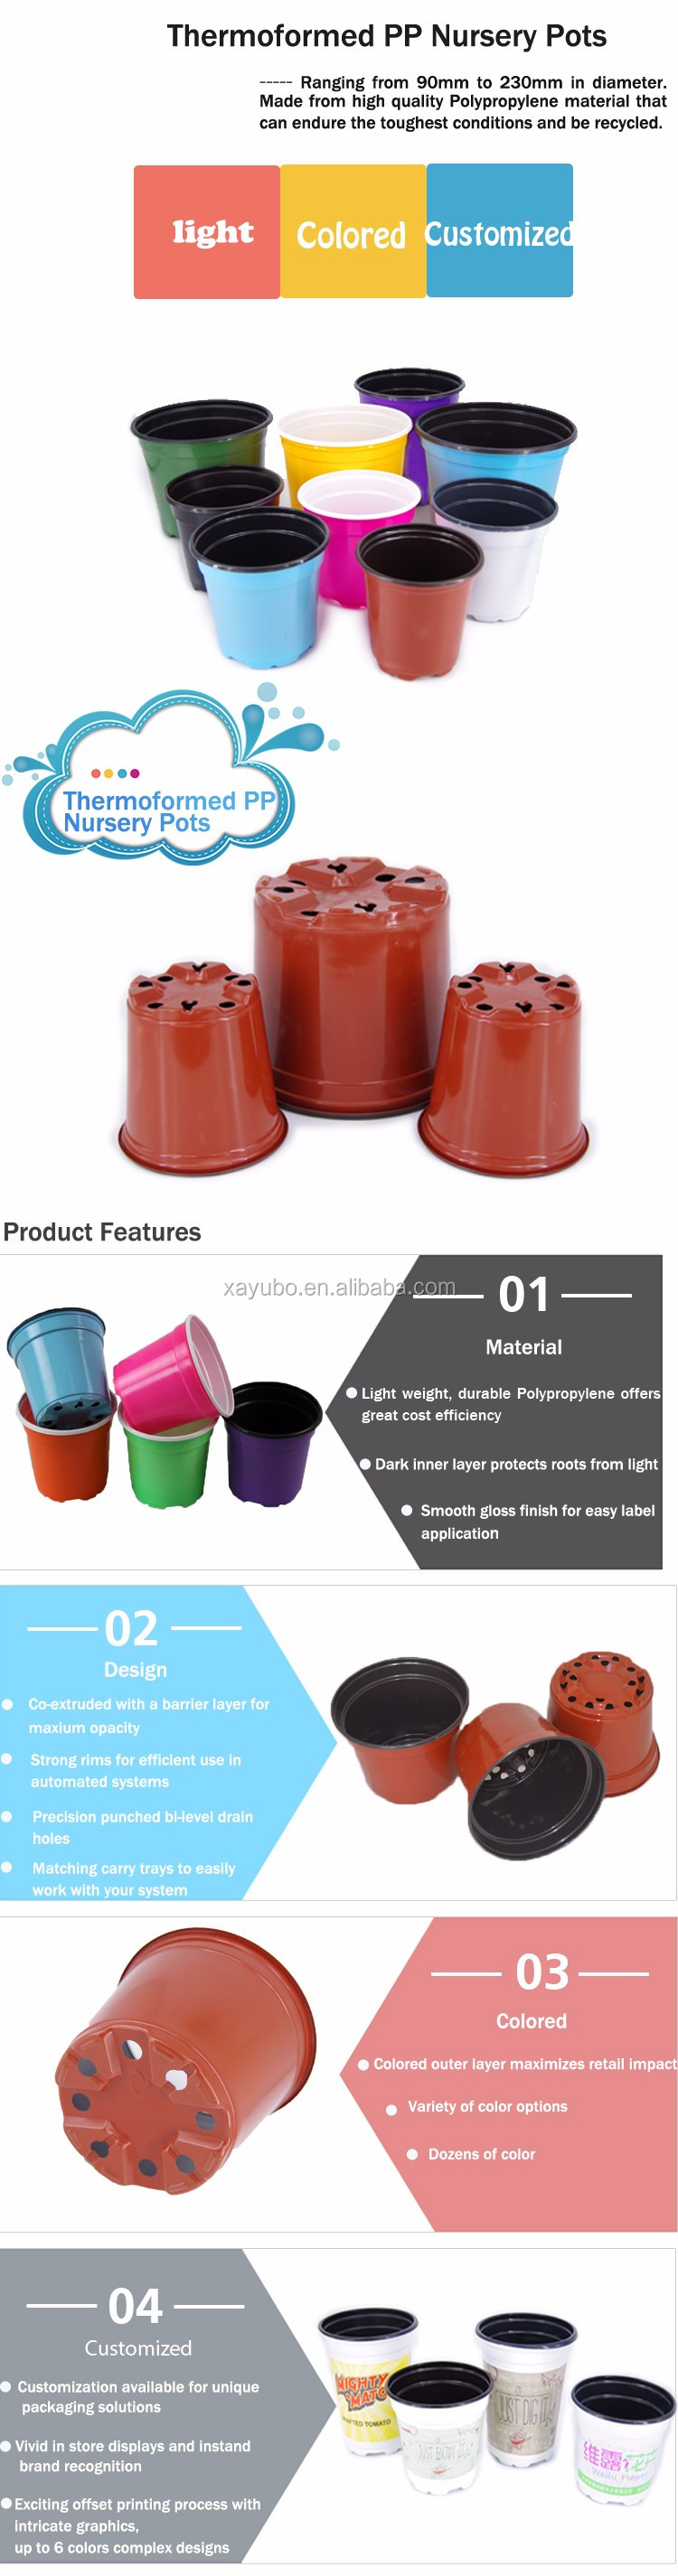 China Supplier Cheap Price Various Color Plastic Flower Pots For Garden Grower